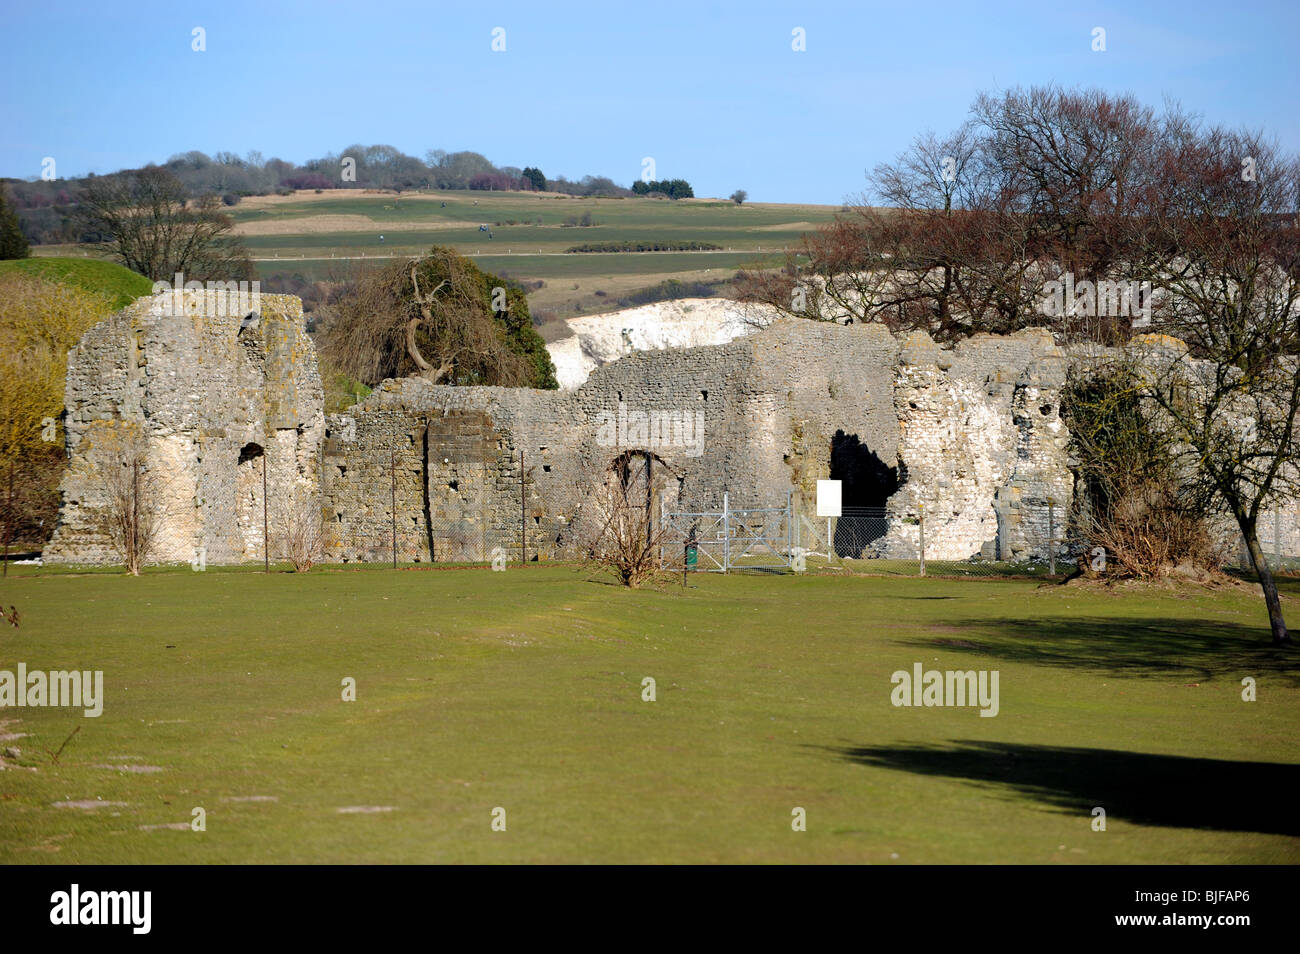 Lewes Priory was founded between 1078 and 1082 & dedicated to St Pancras, it became one of the wealthiest monasteries - Stock Image